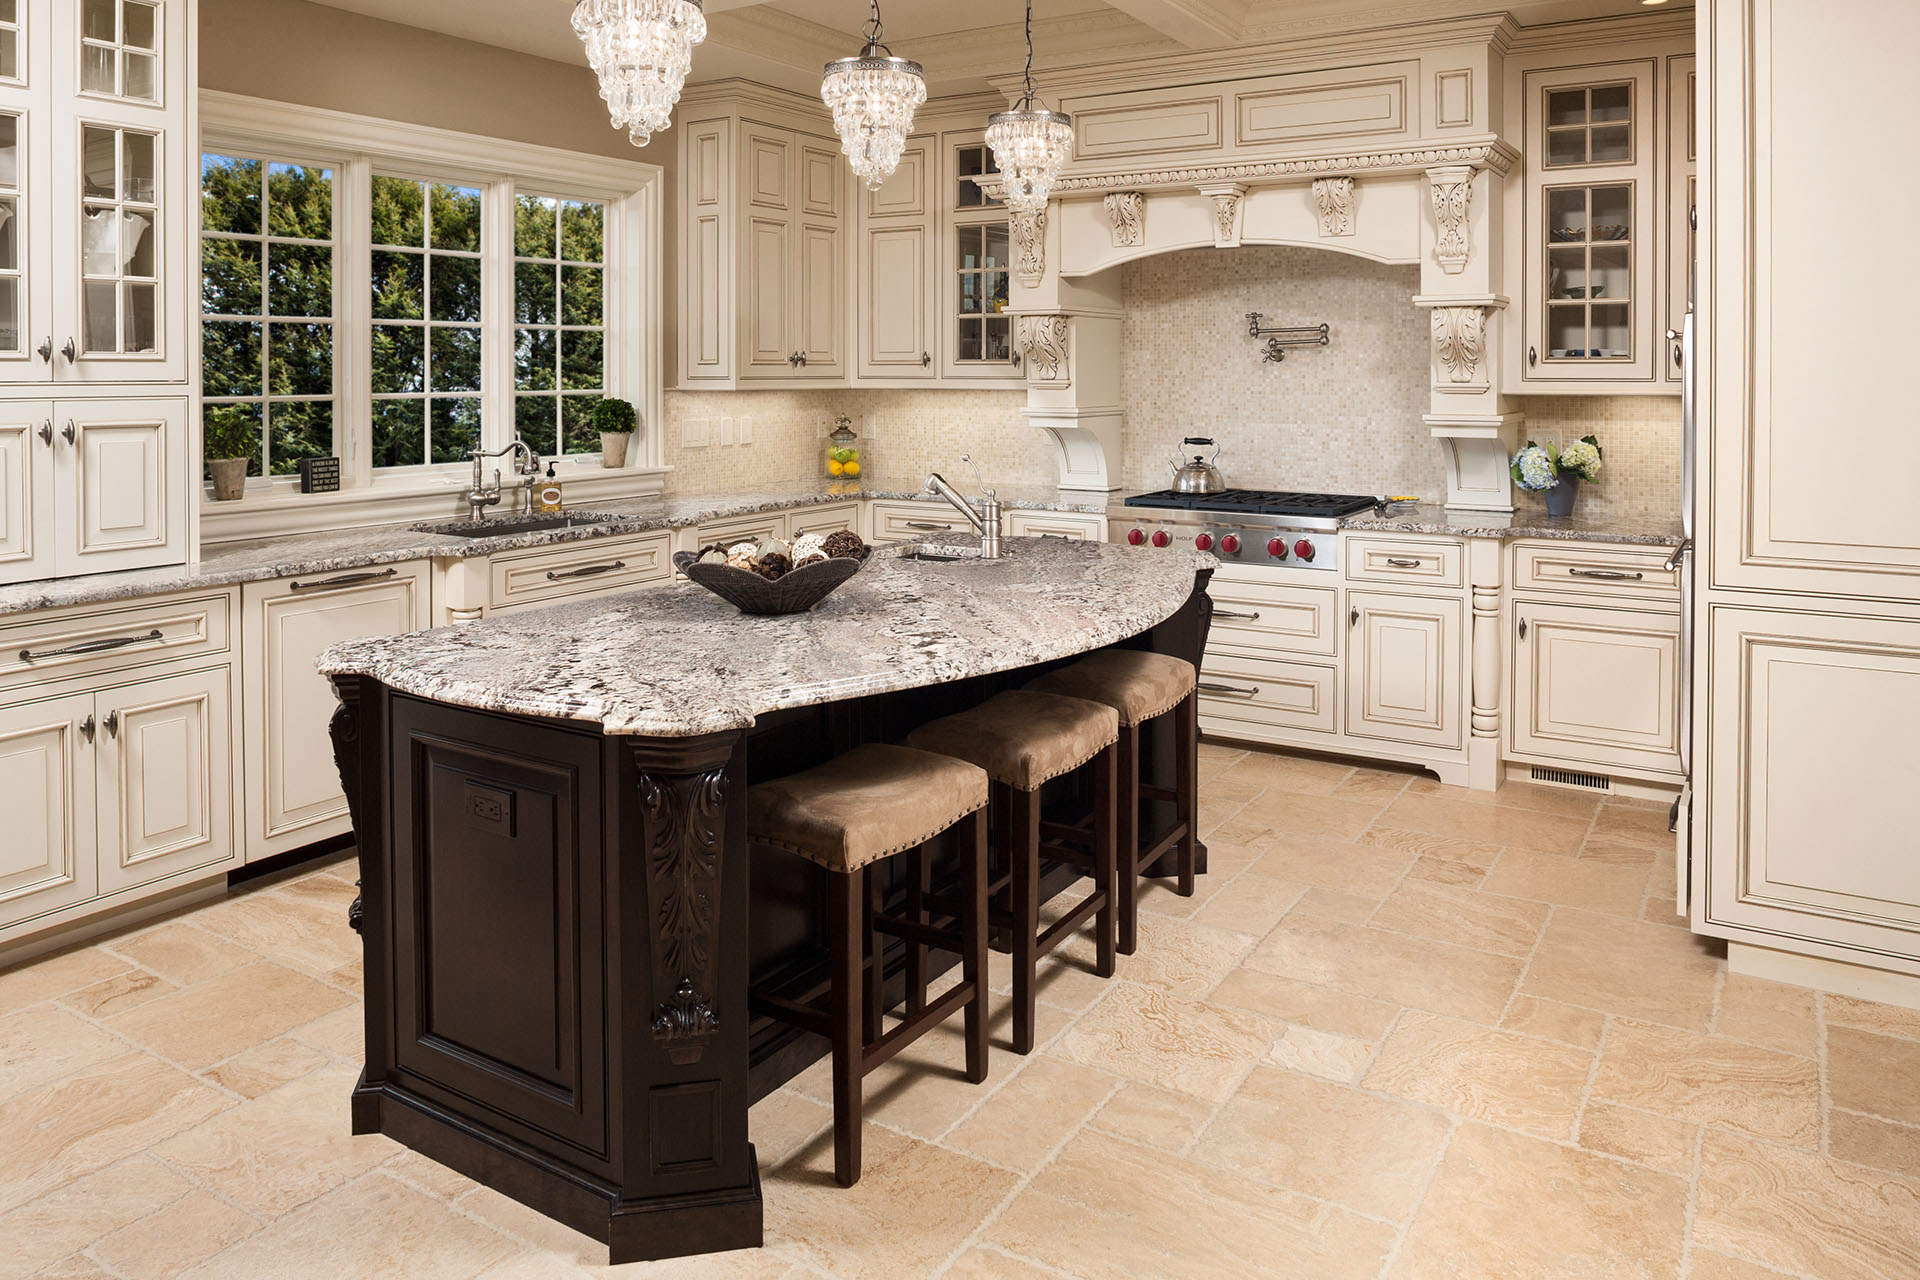 Custom Kitchen Cabinets Massachusetts Stone Inc Video And Image Gallery Proview